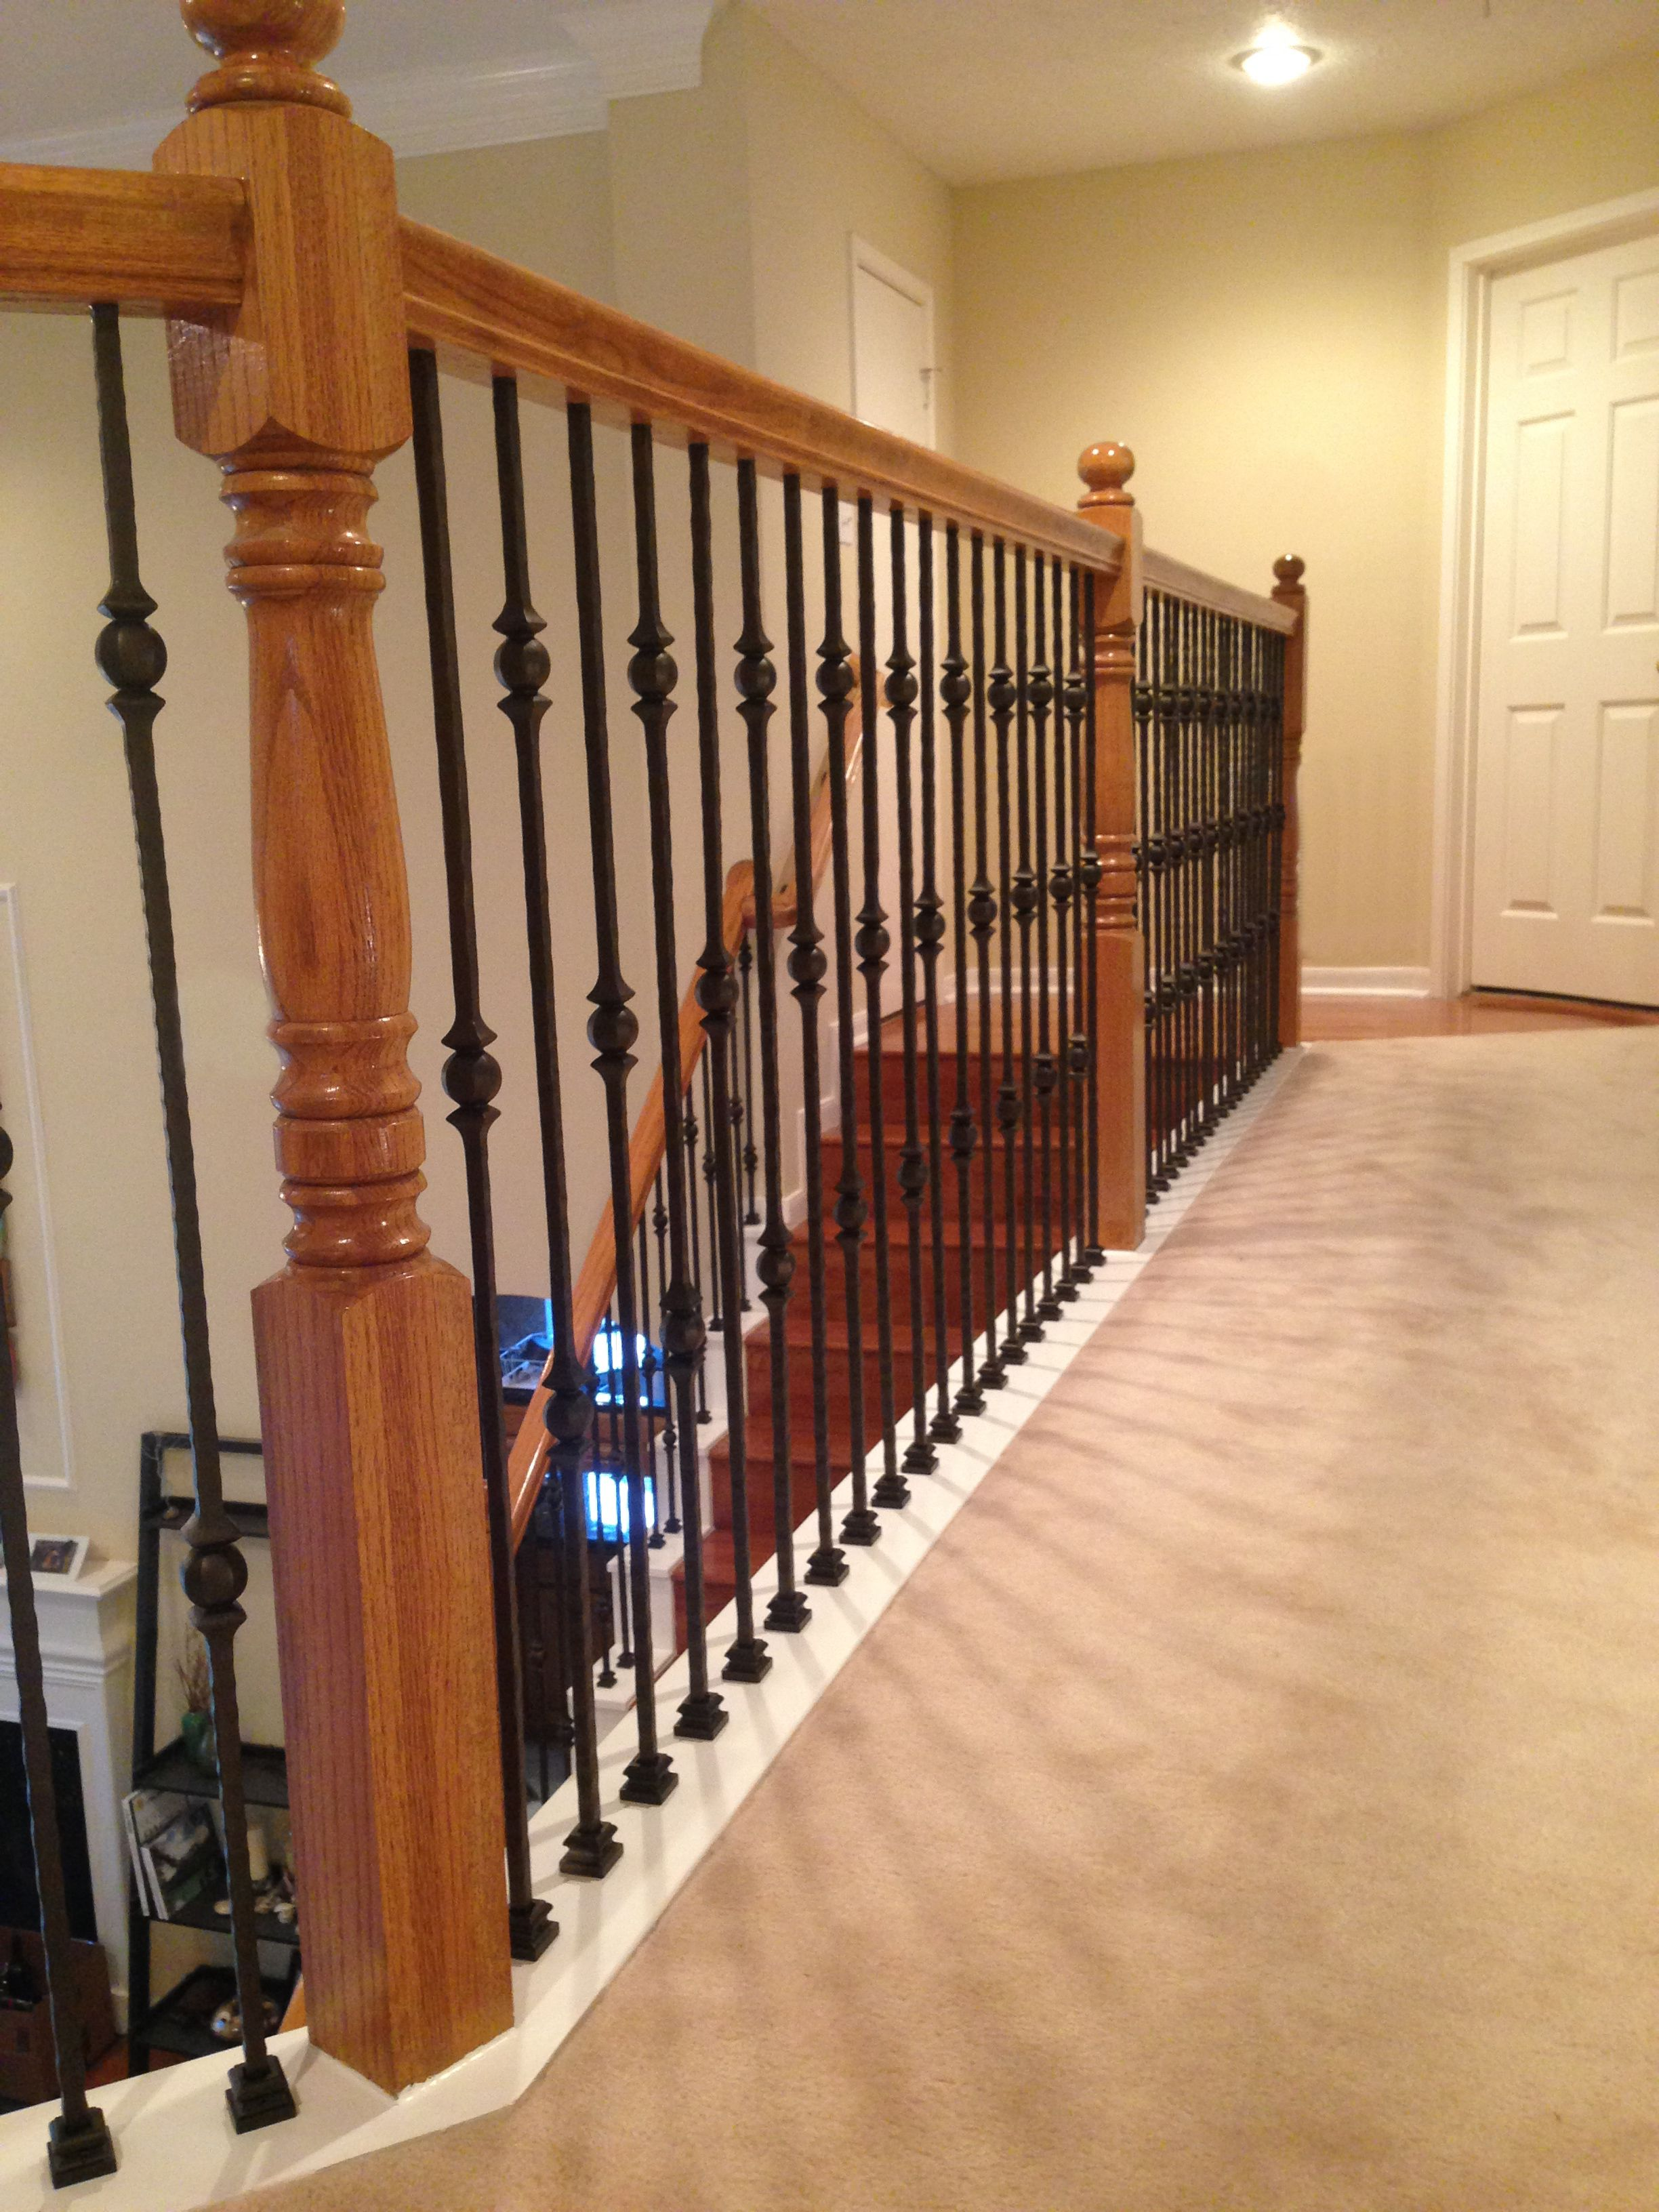 At the Goodwin's Houston home we did a full baluster change out and added a wall rail to meet current building codes. Here you can see our PC18/1 and PC18/2 wrought iron balusters with a Dark Champagne finish.